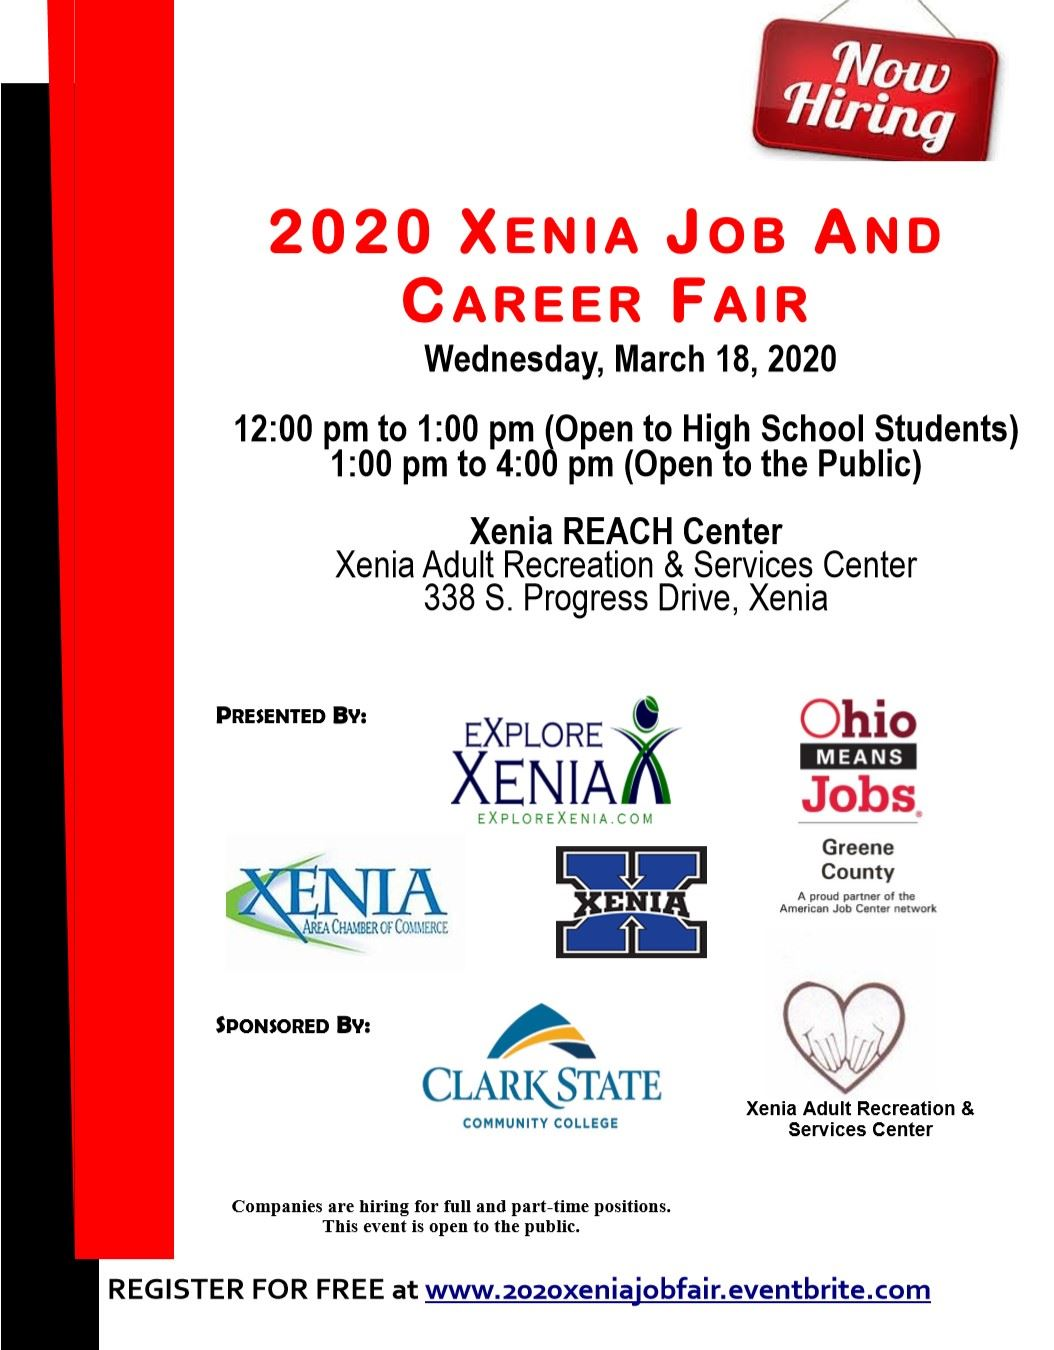 2020 Xenia Job and Career Fair